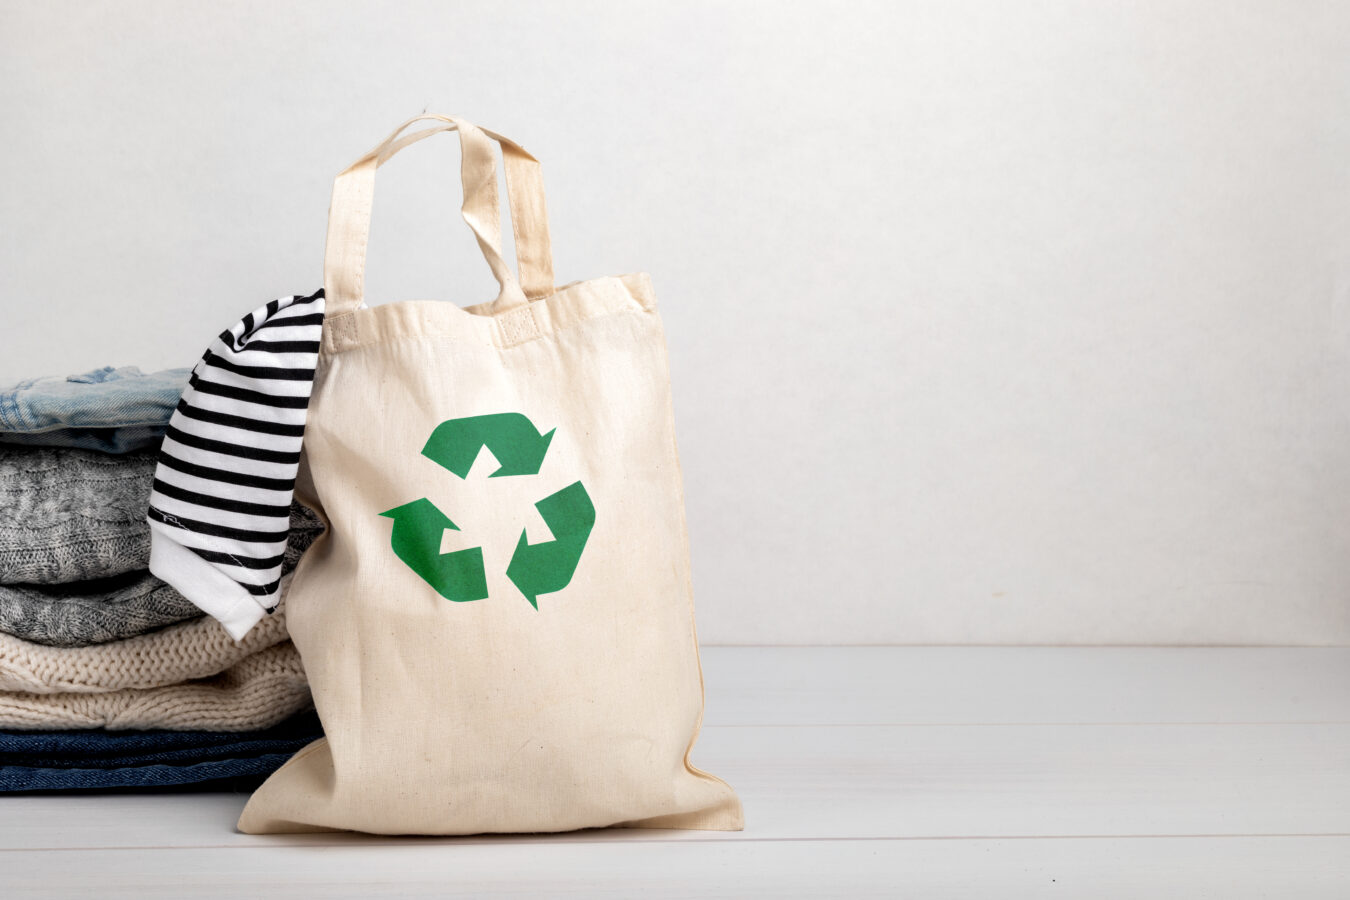 an image showing sustainable clothing